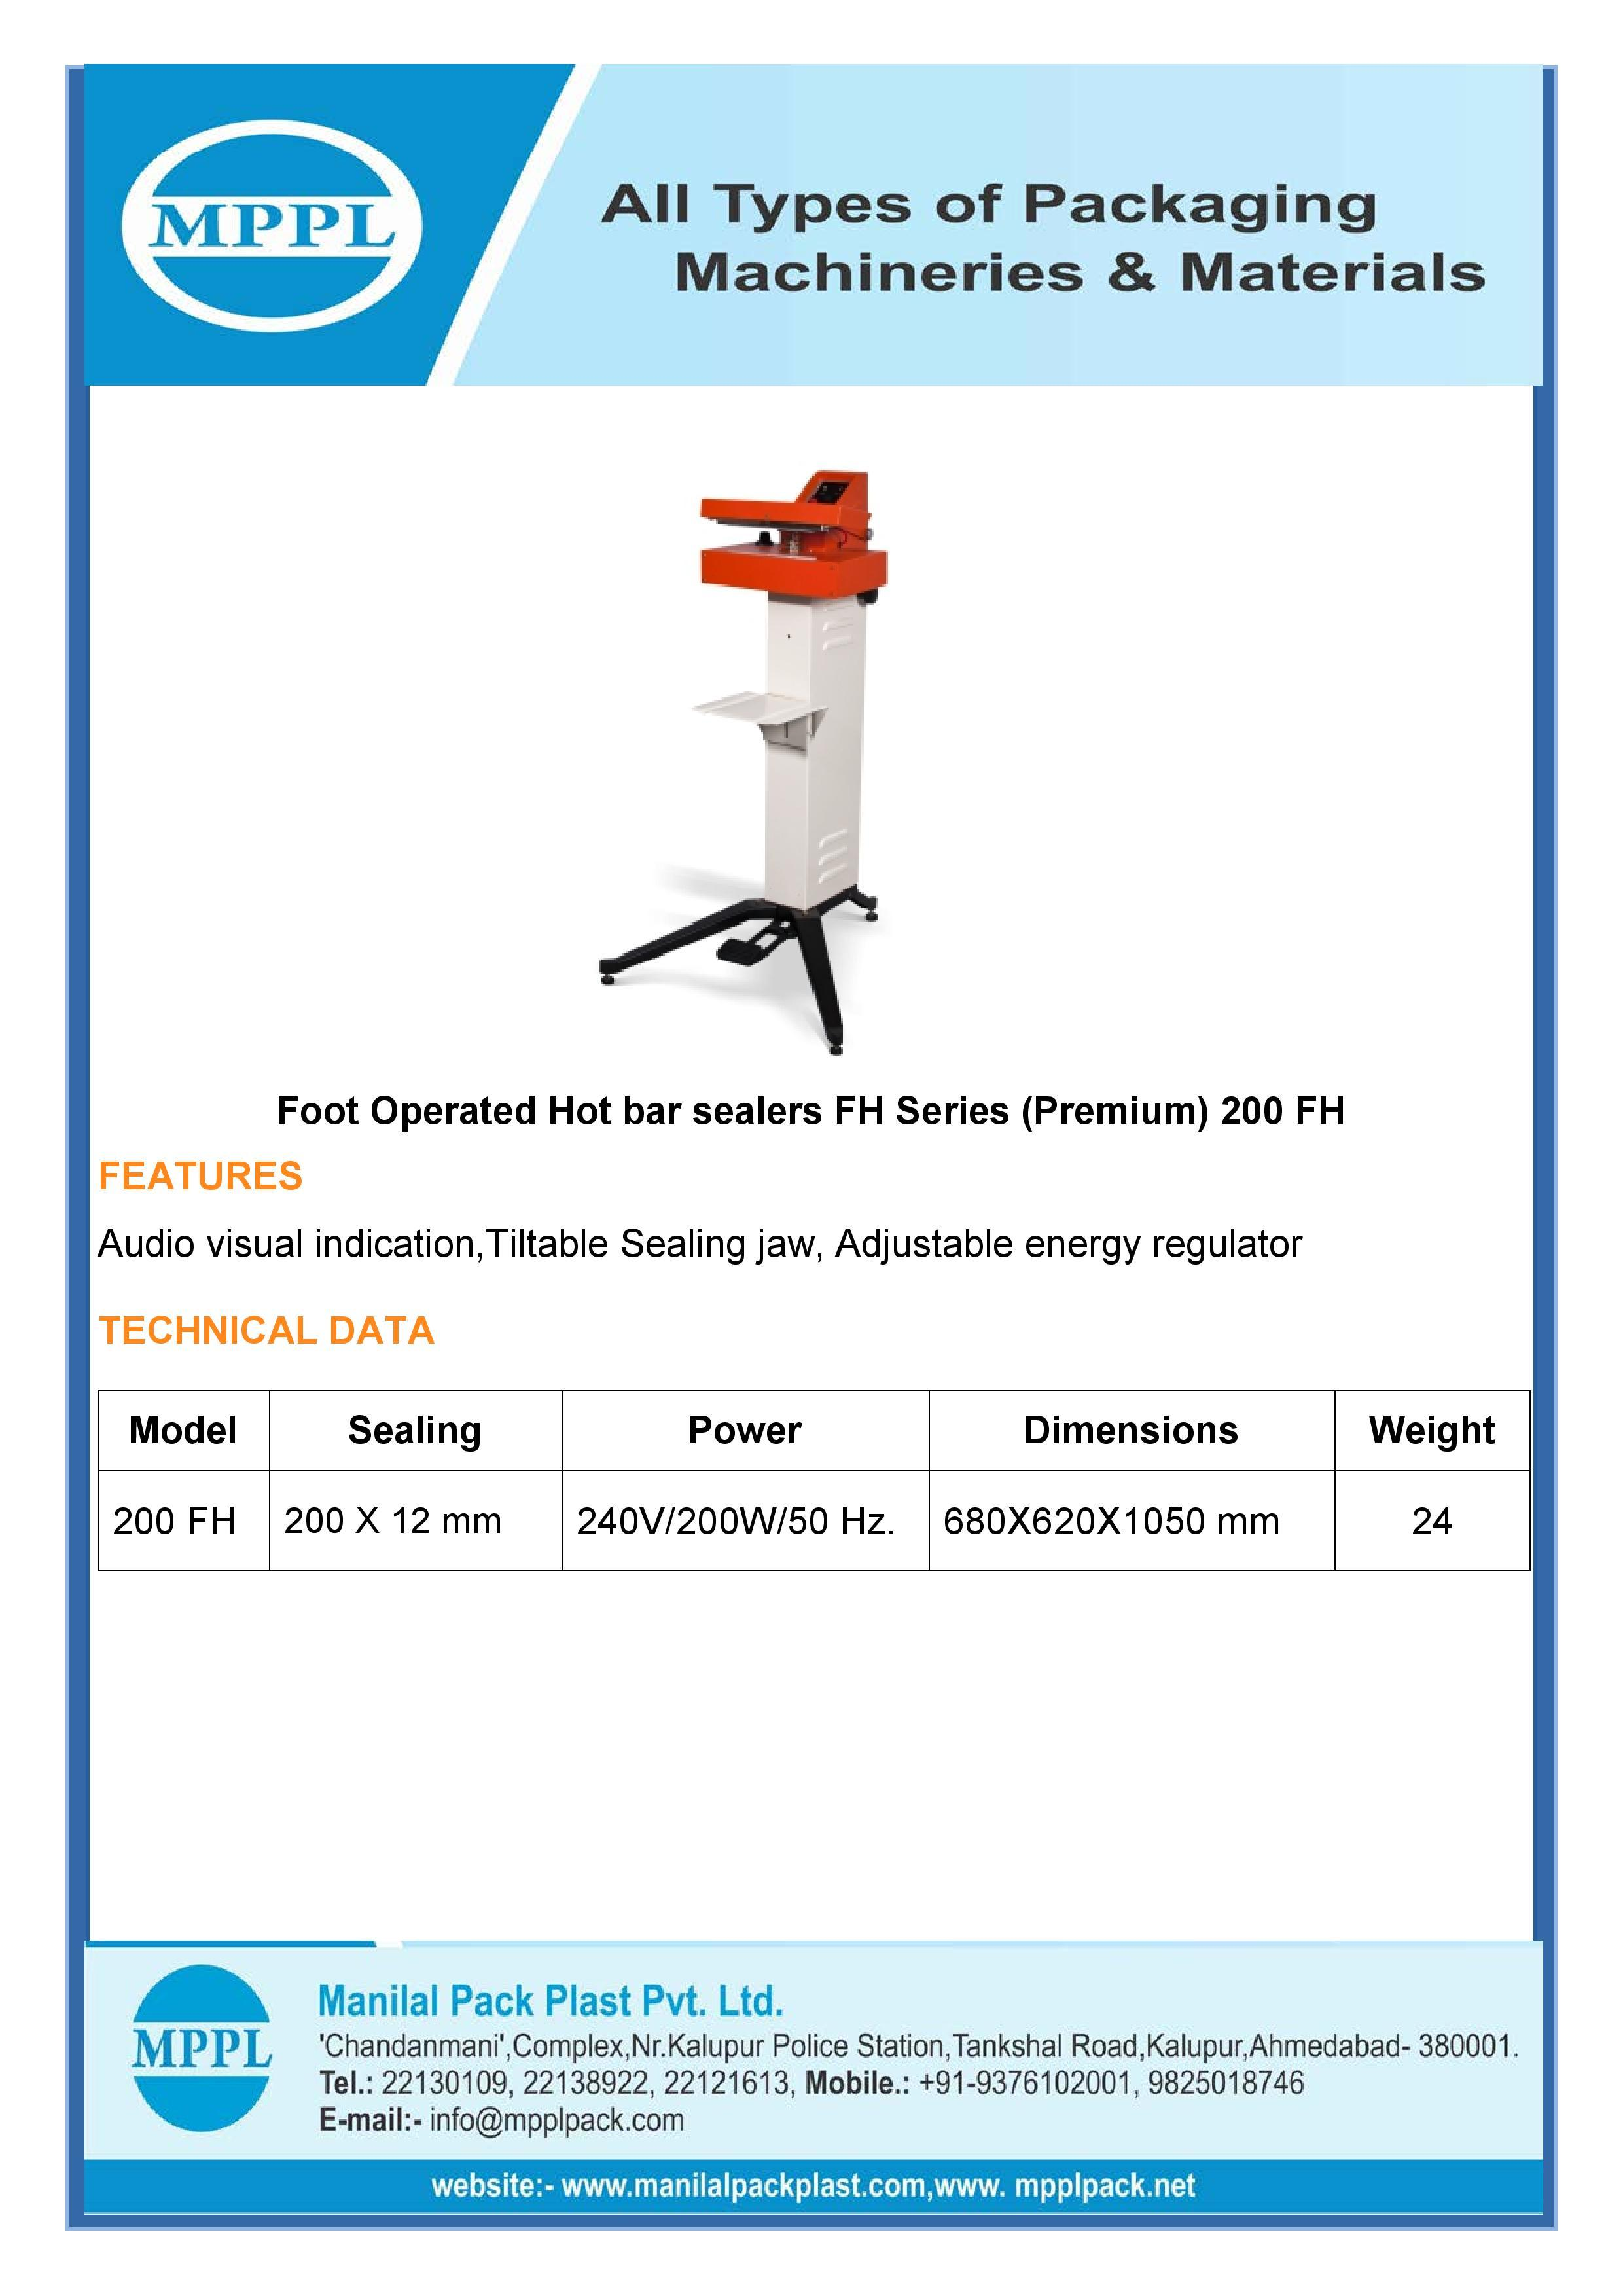 Foot Operated Hot bar sealer FH Delta series (Economy)